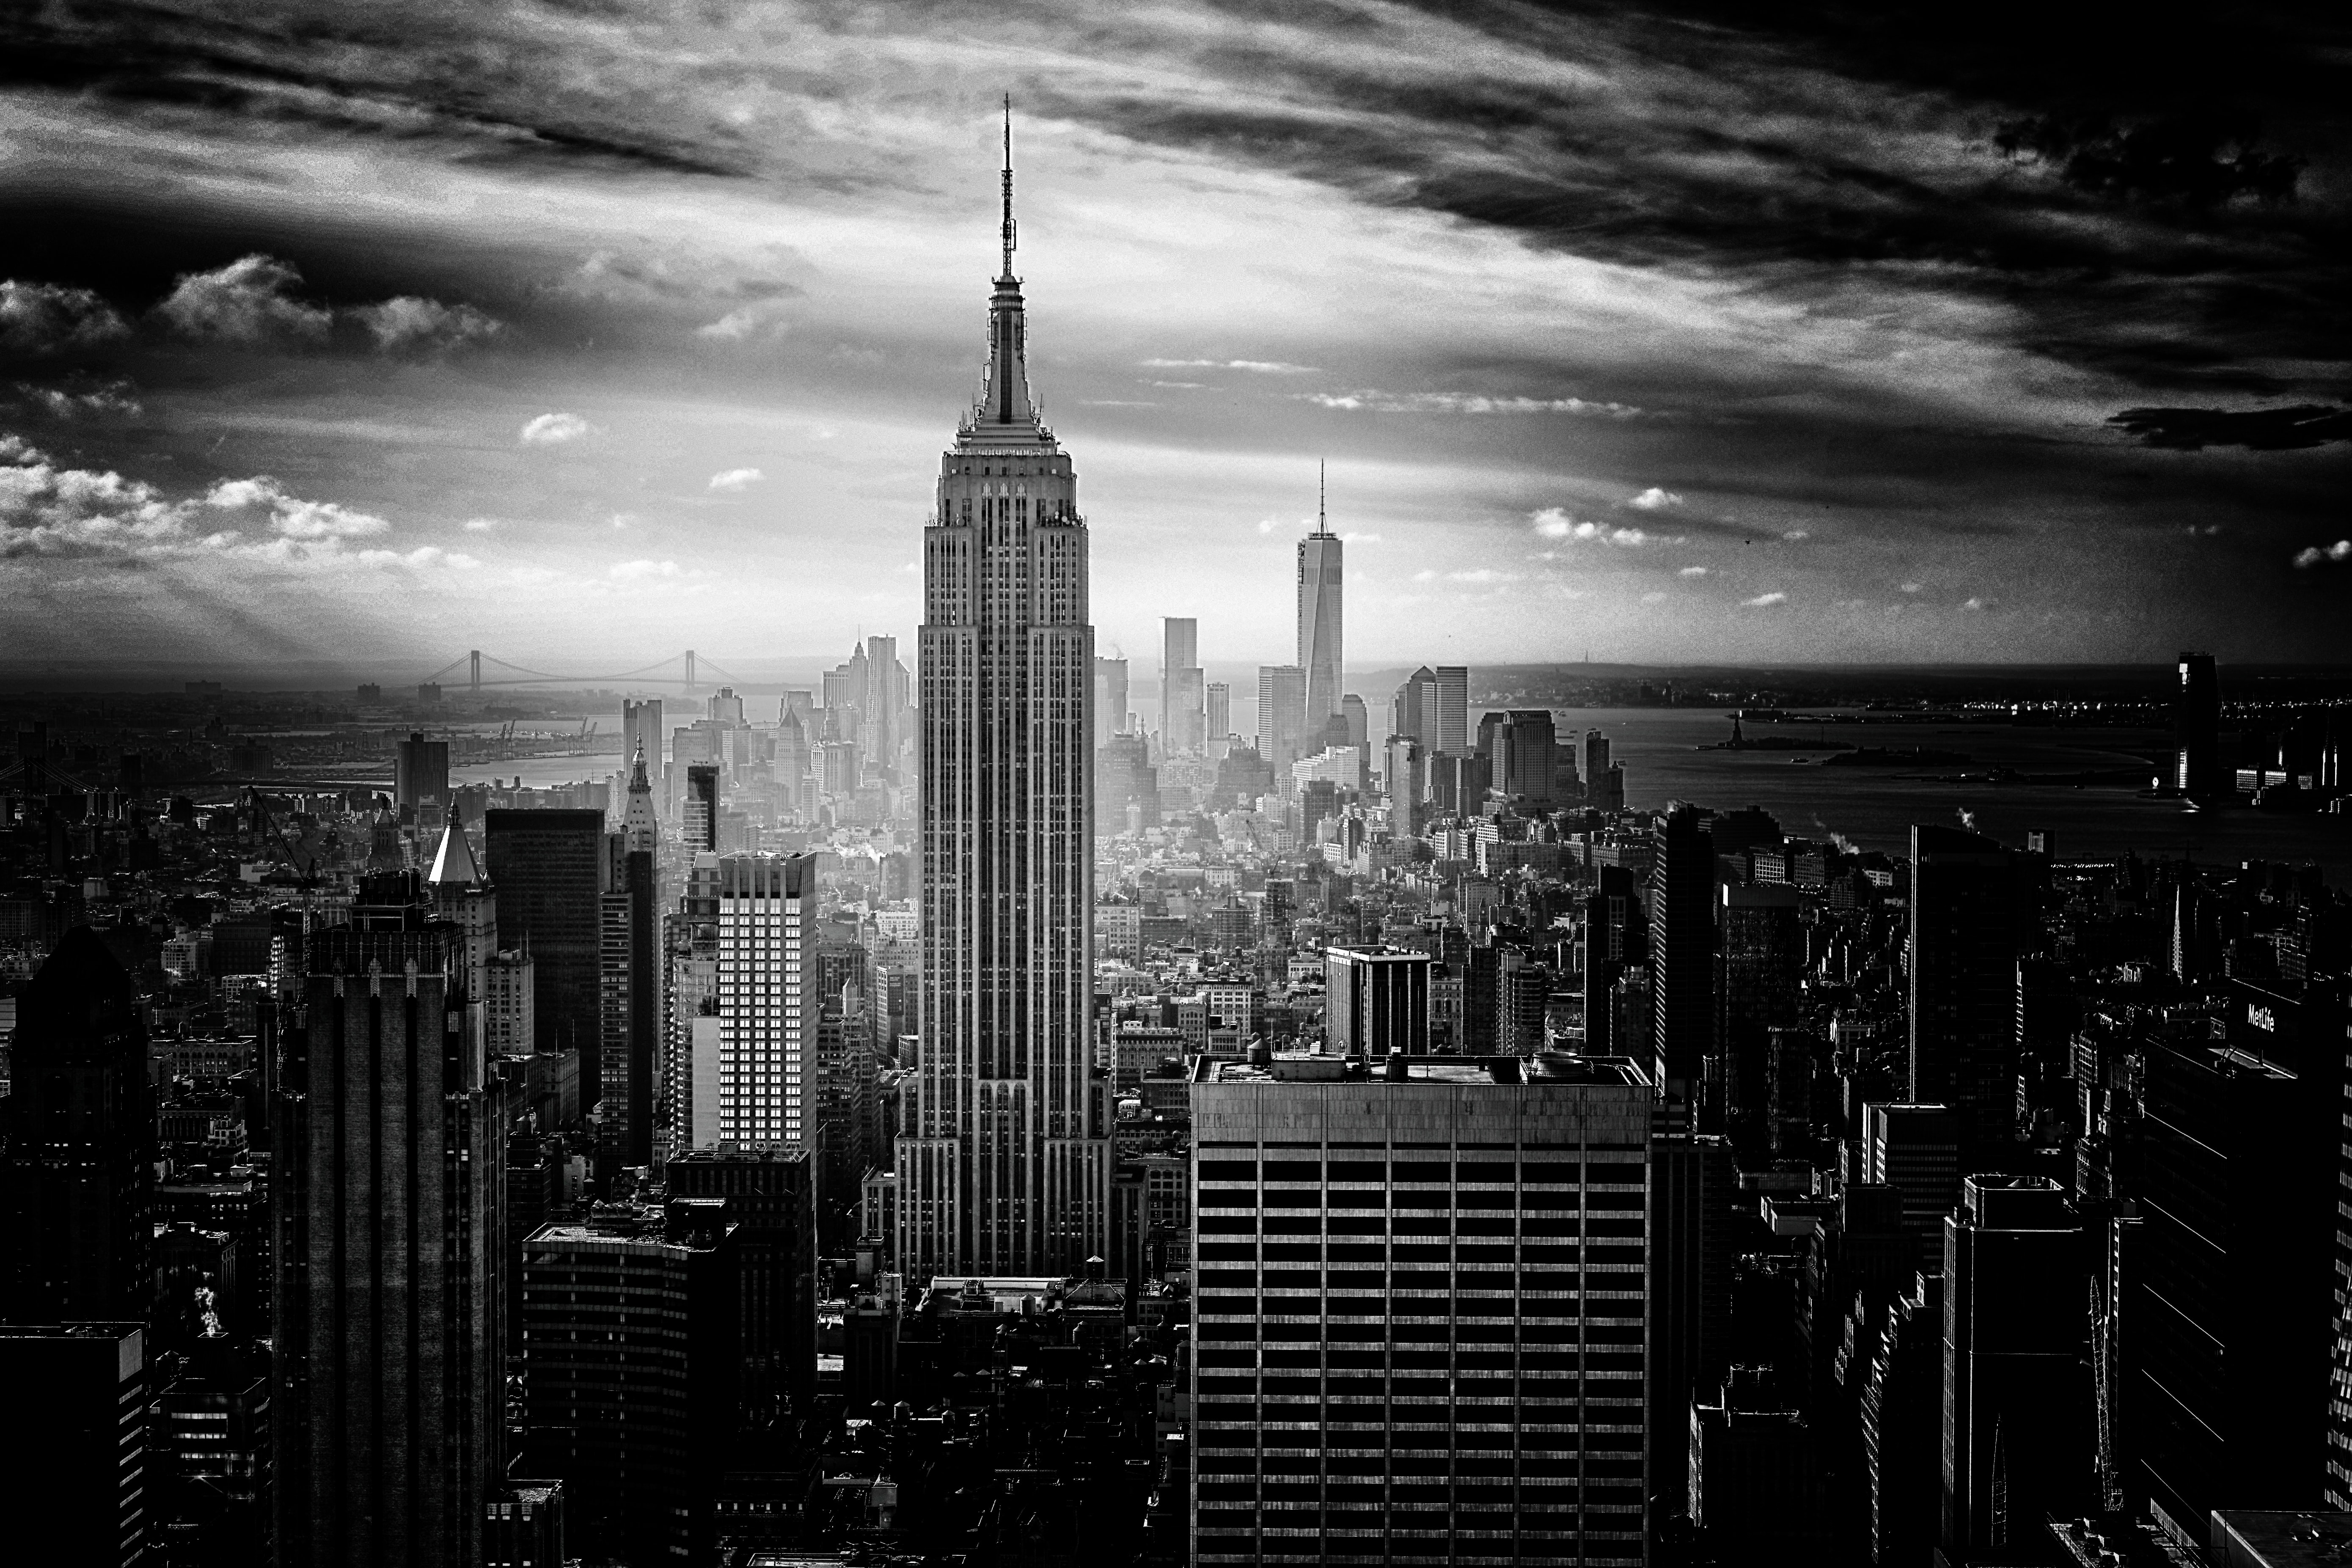 Black and white photo of the Empire State Building and downtown New York City skyline